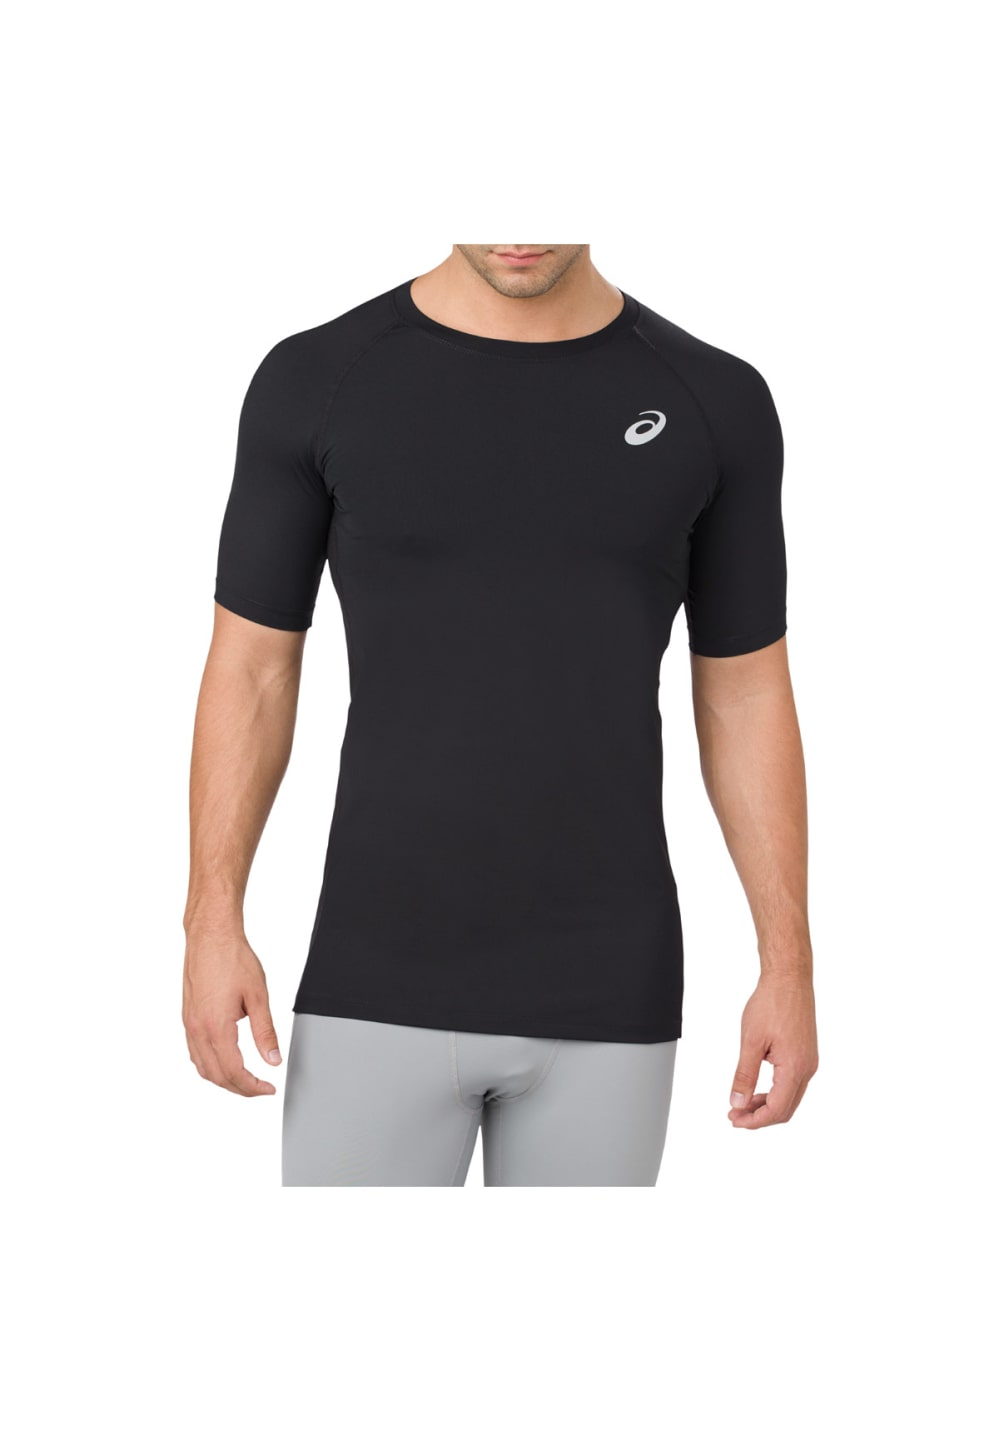 b4b72e96f2 ASICS Base Layer Top - Running tops for Men - Black